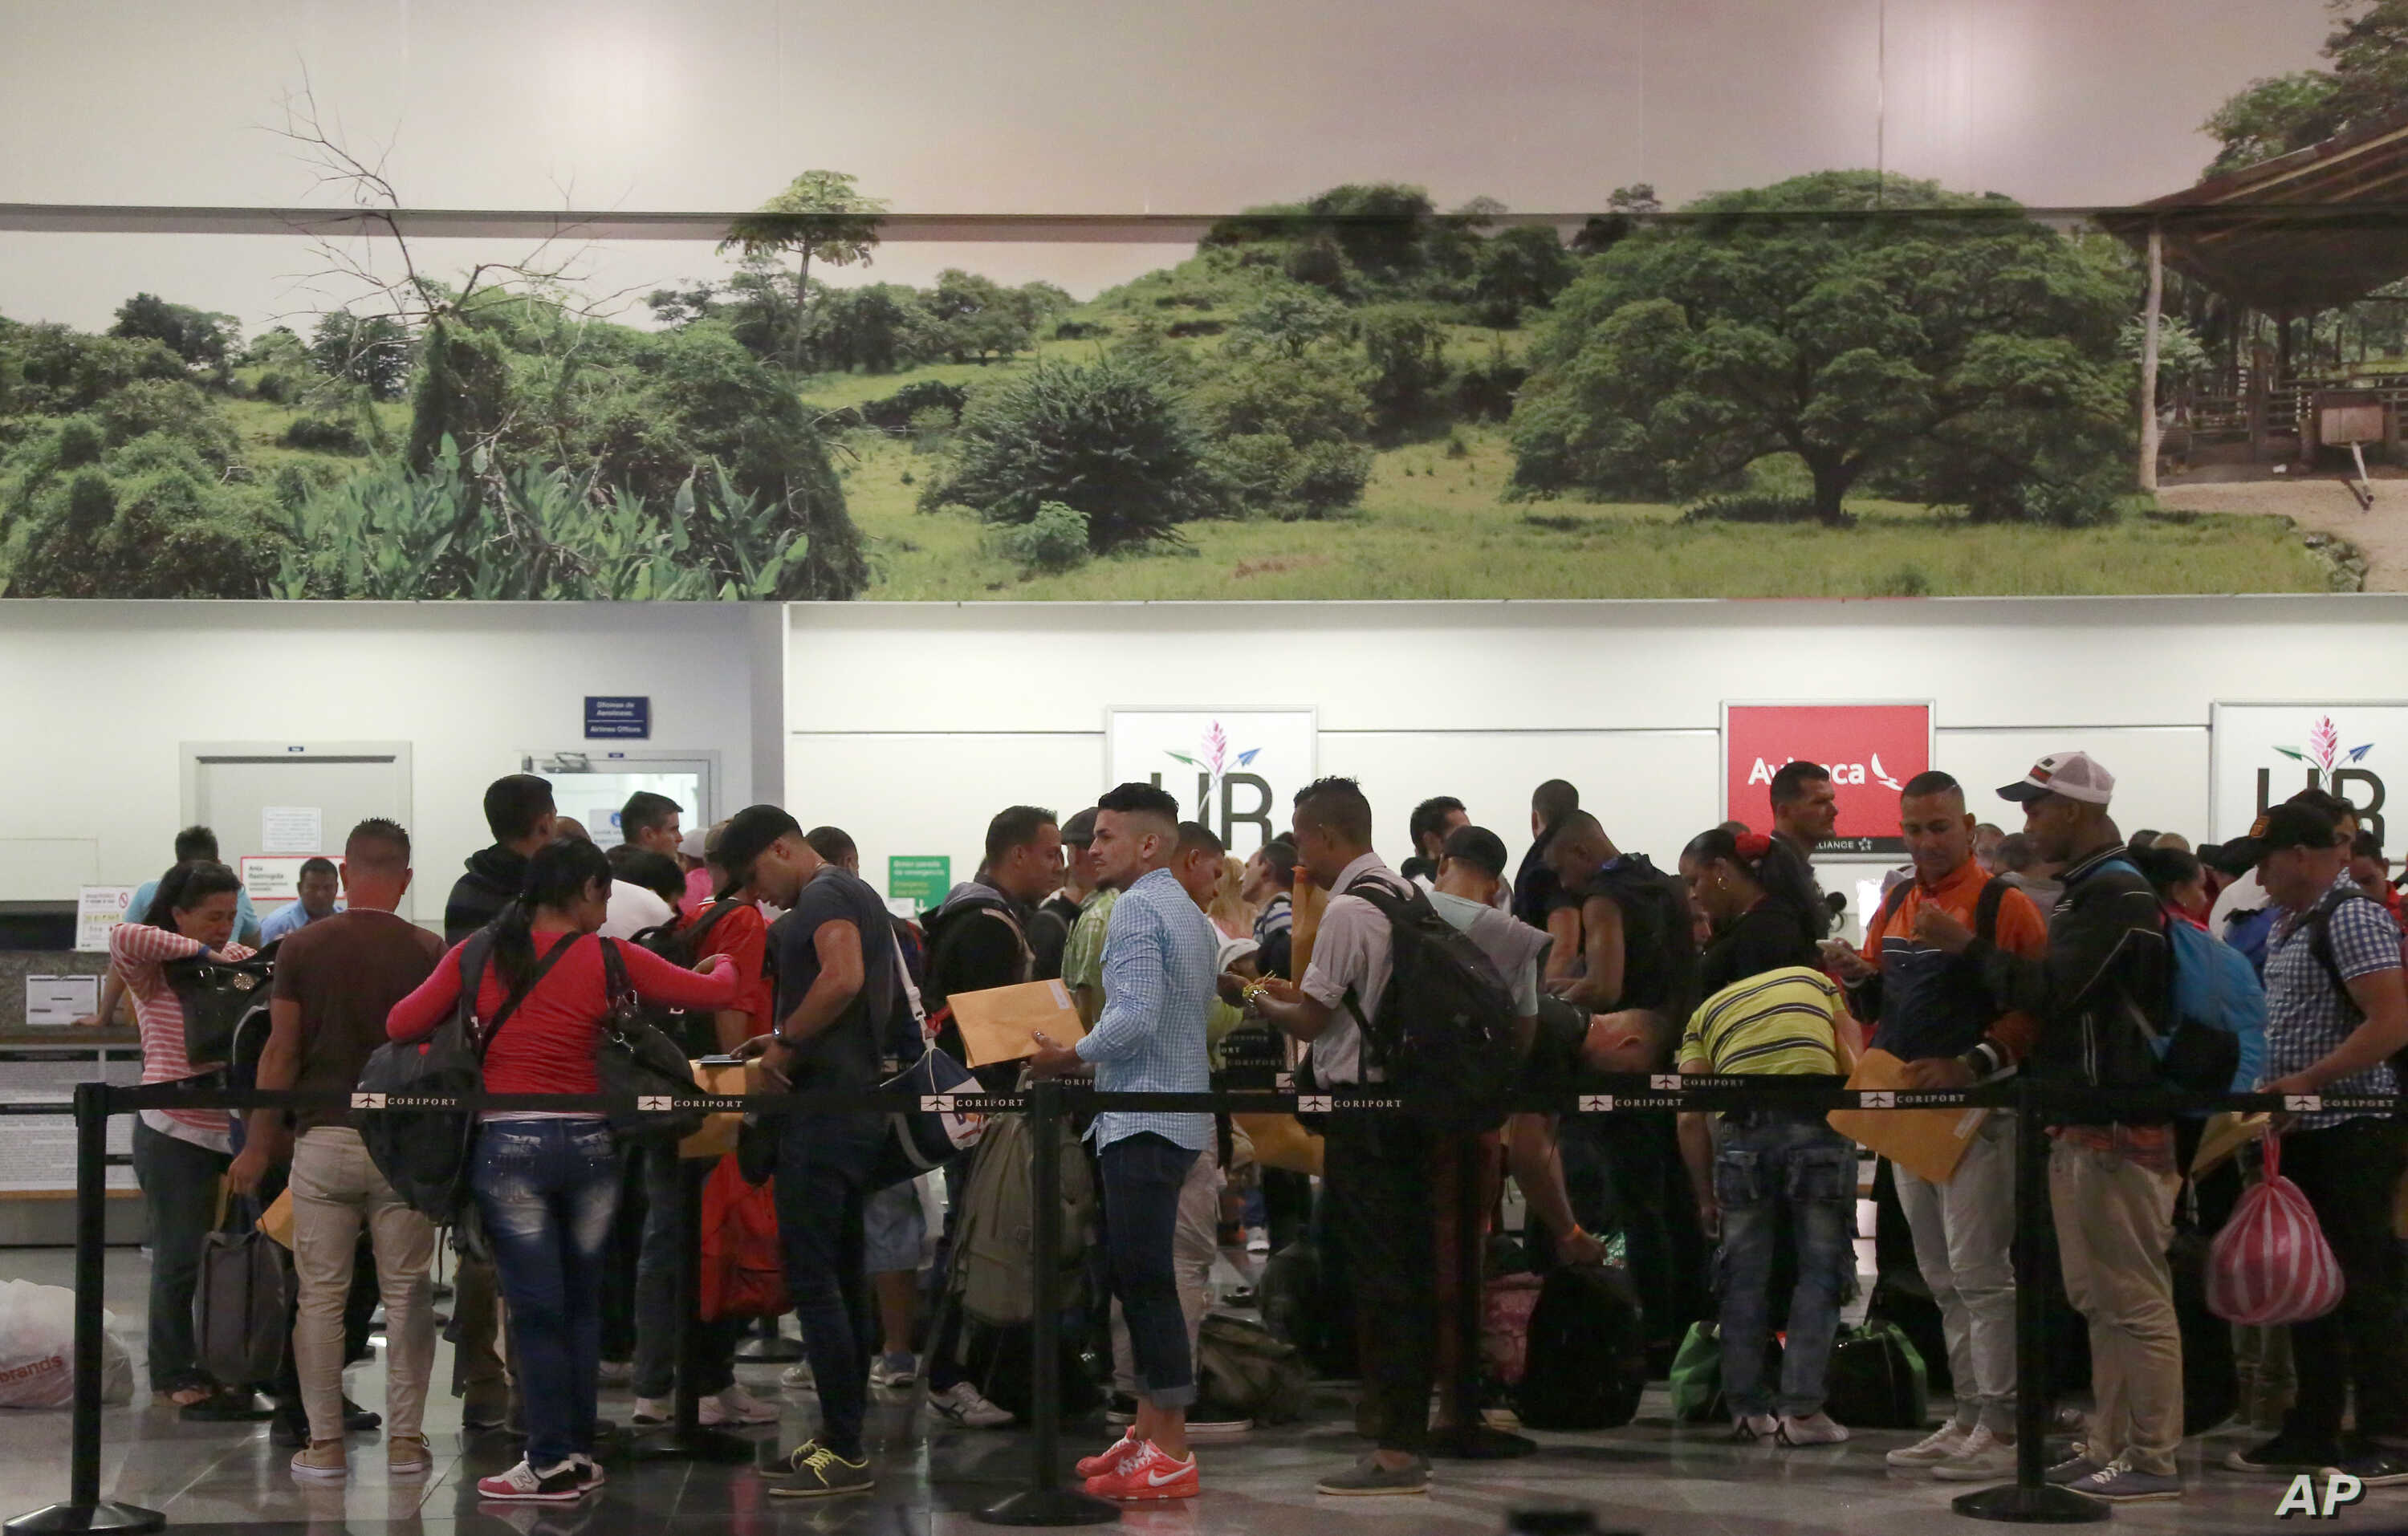 Cuban migrants wait to check-in at the Daniel Oduber Quiros International Airport in Liberia, Costa Rica, Jan. 12, 2016.